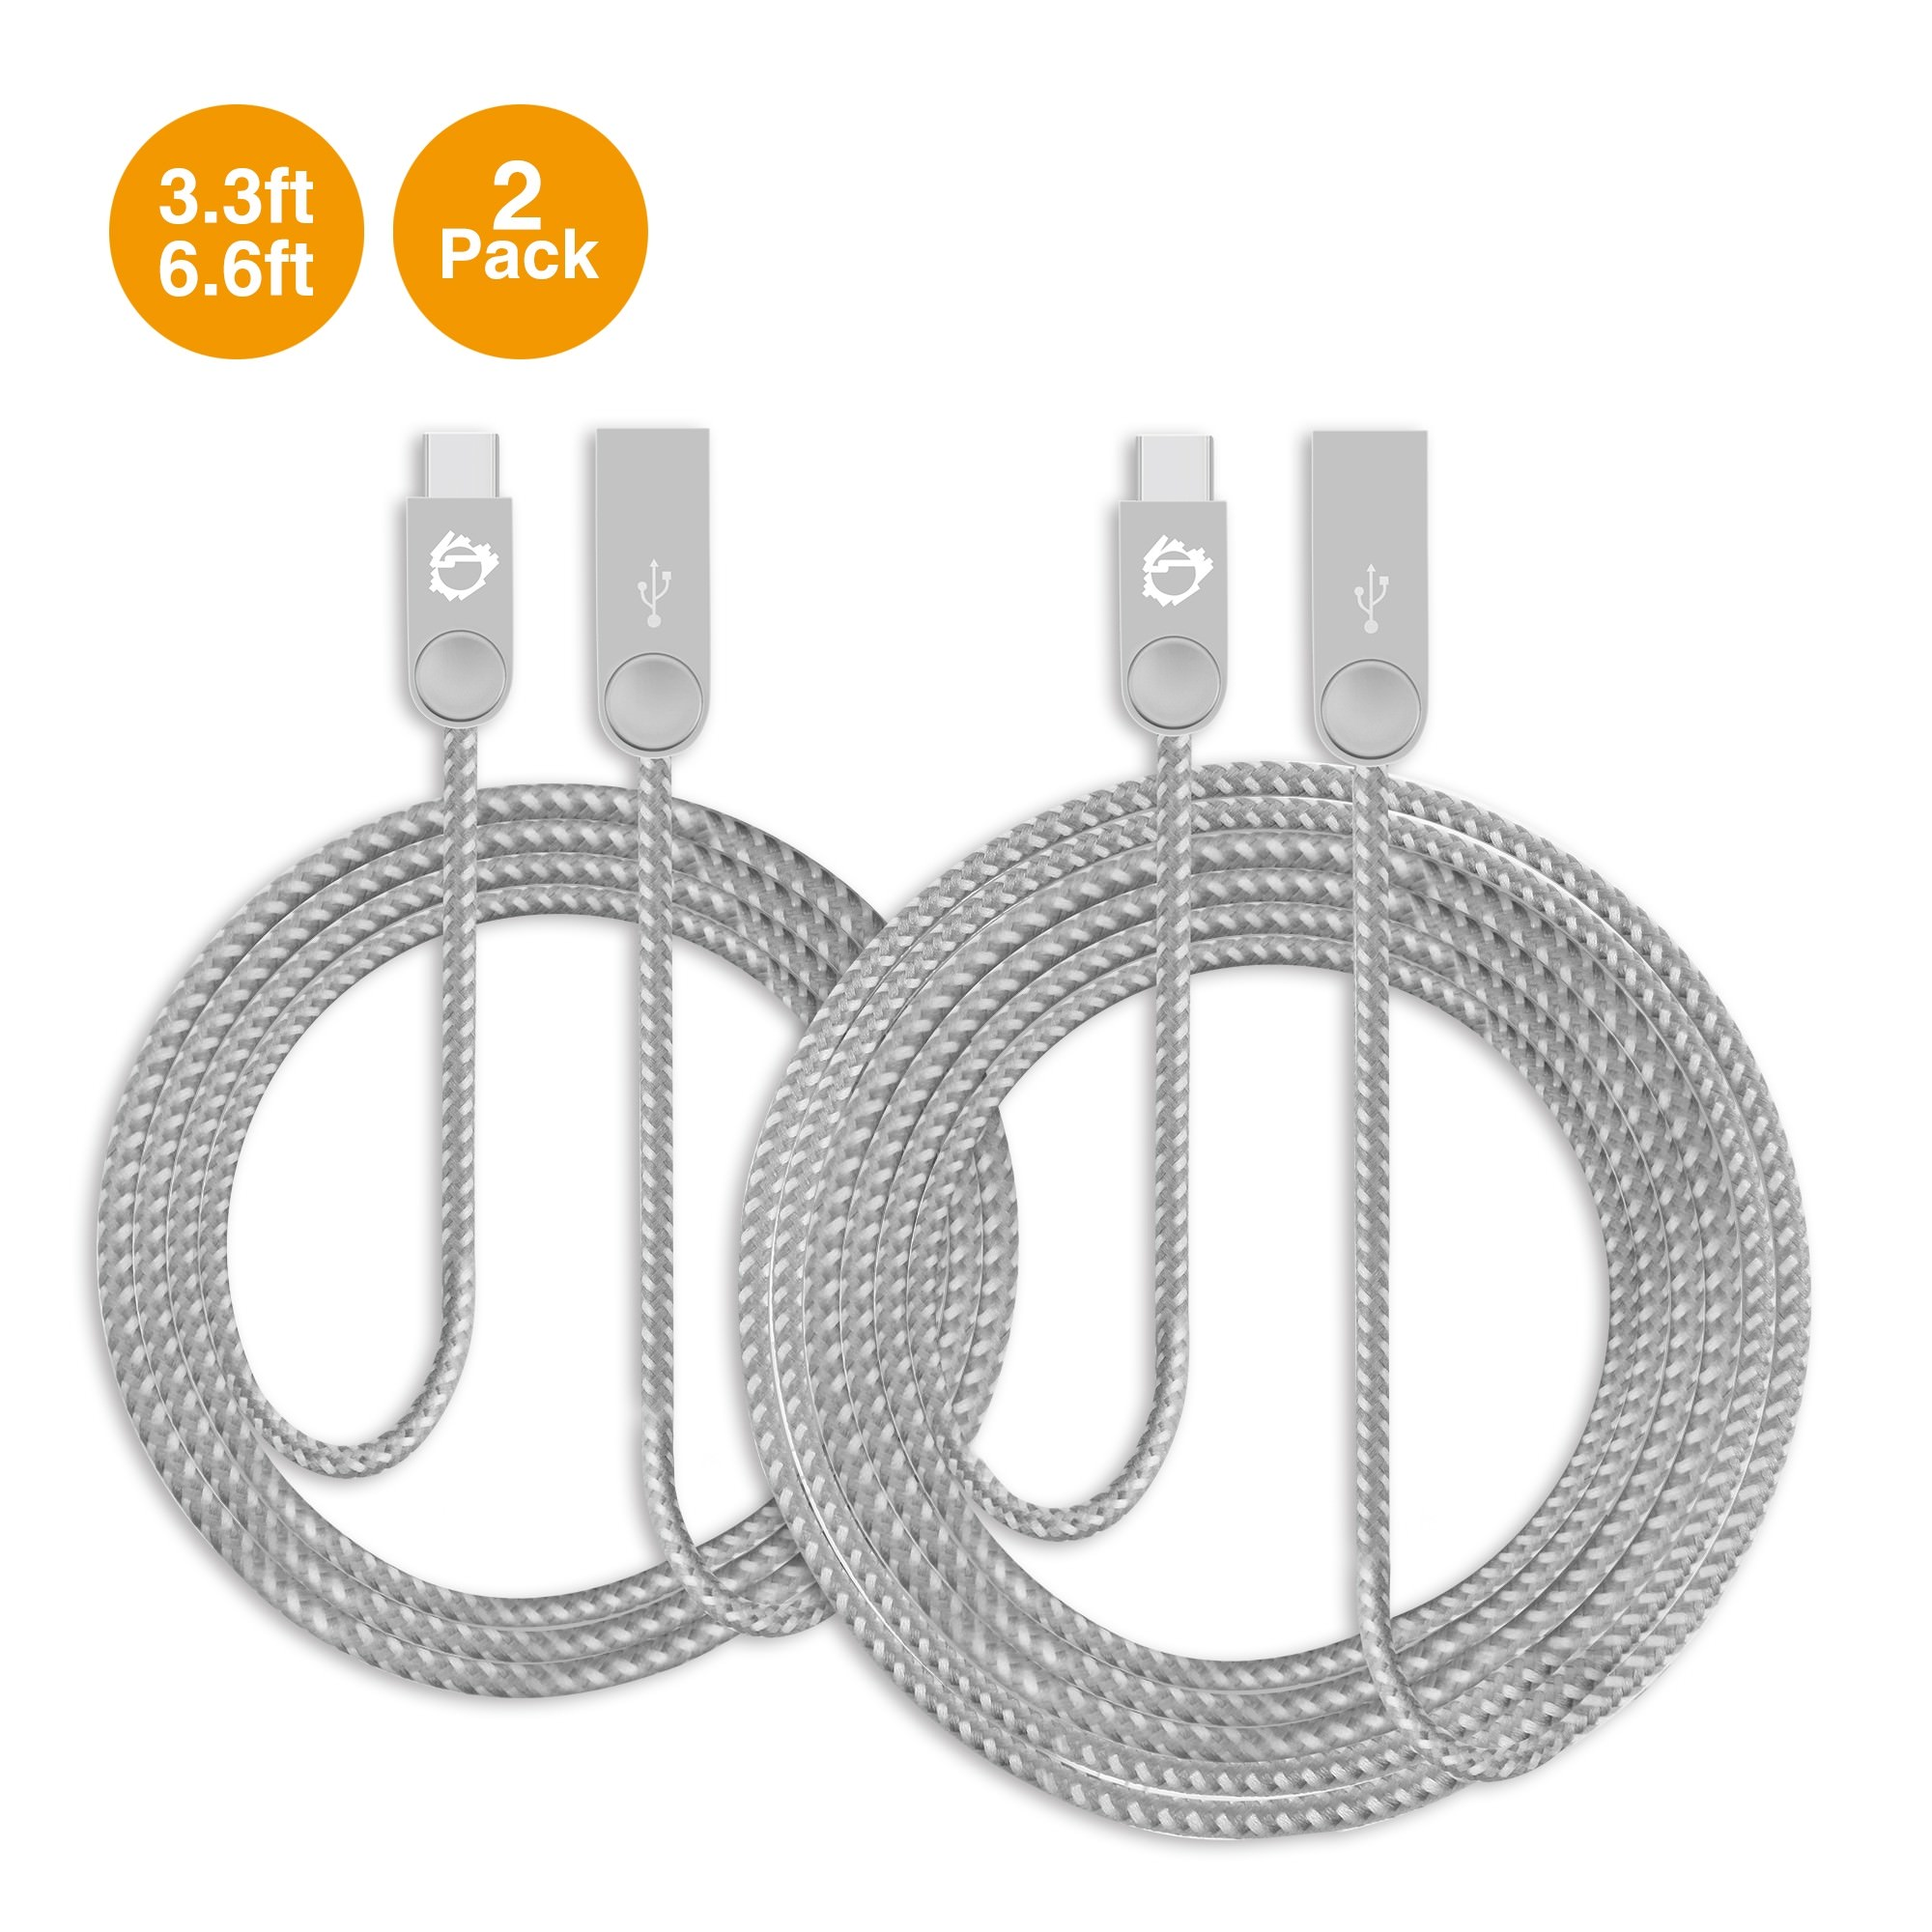 Zinc Alloy USB-C to Type-A Charging & Sync Braided Cable Bundle - 3.3ft & 6.6ft, 2-Pack